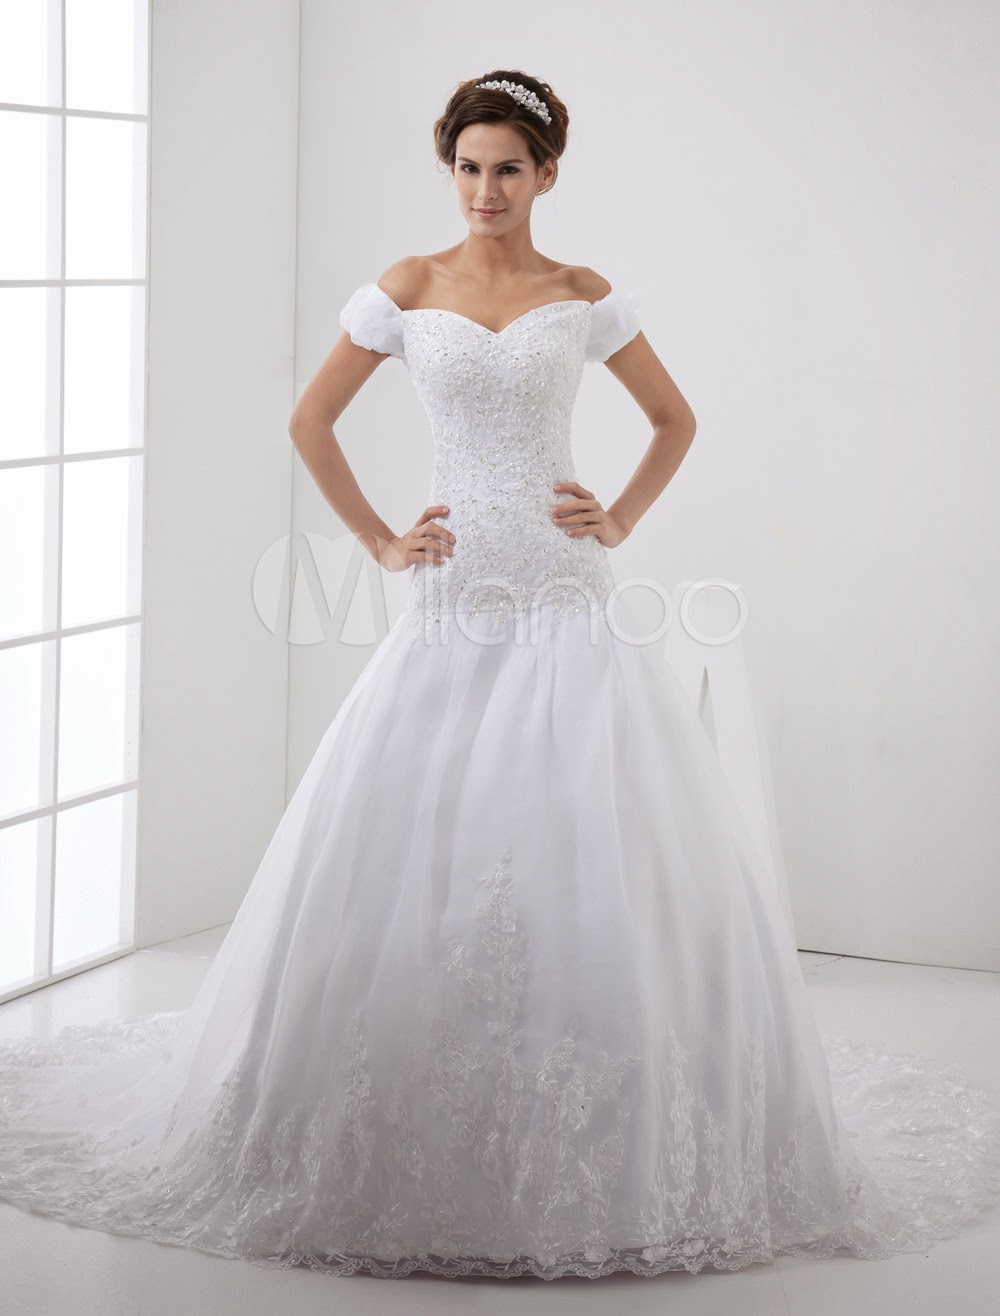 China Wholesale Dresses - White Off-The-Shoulder A-line Lace Organza Wedding Dress